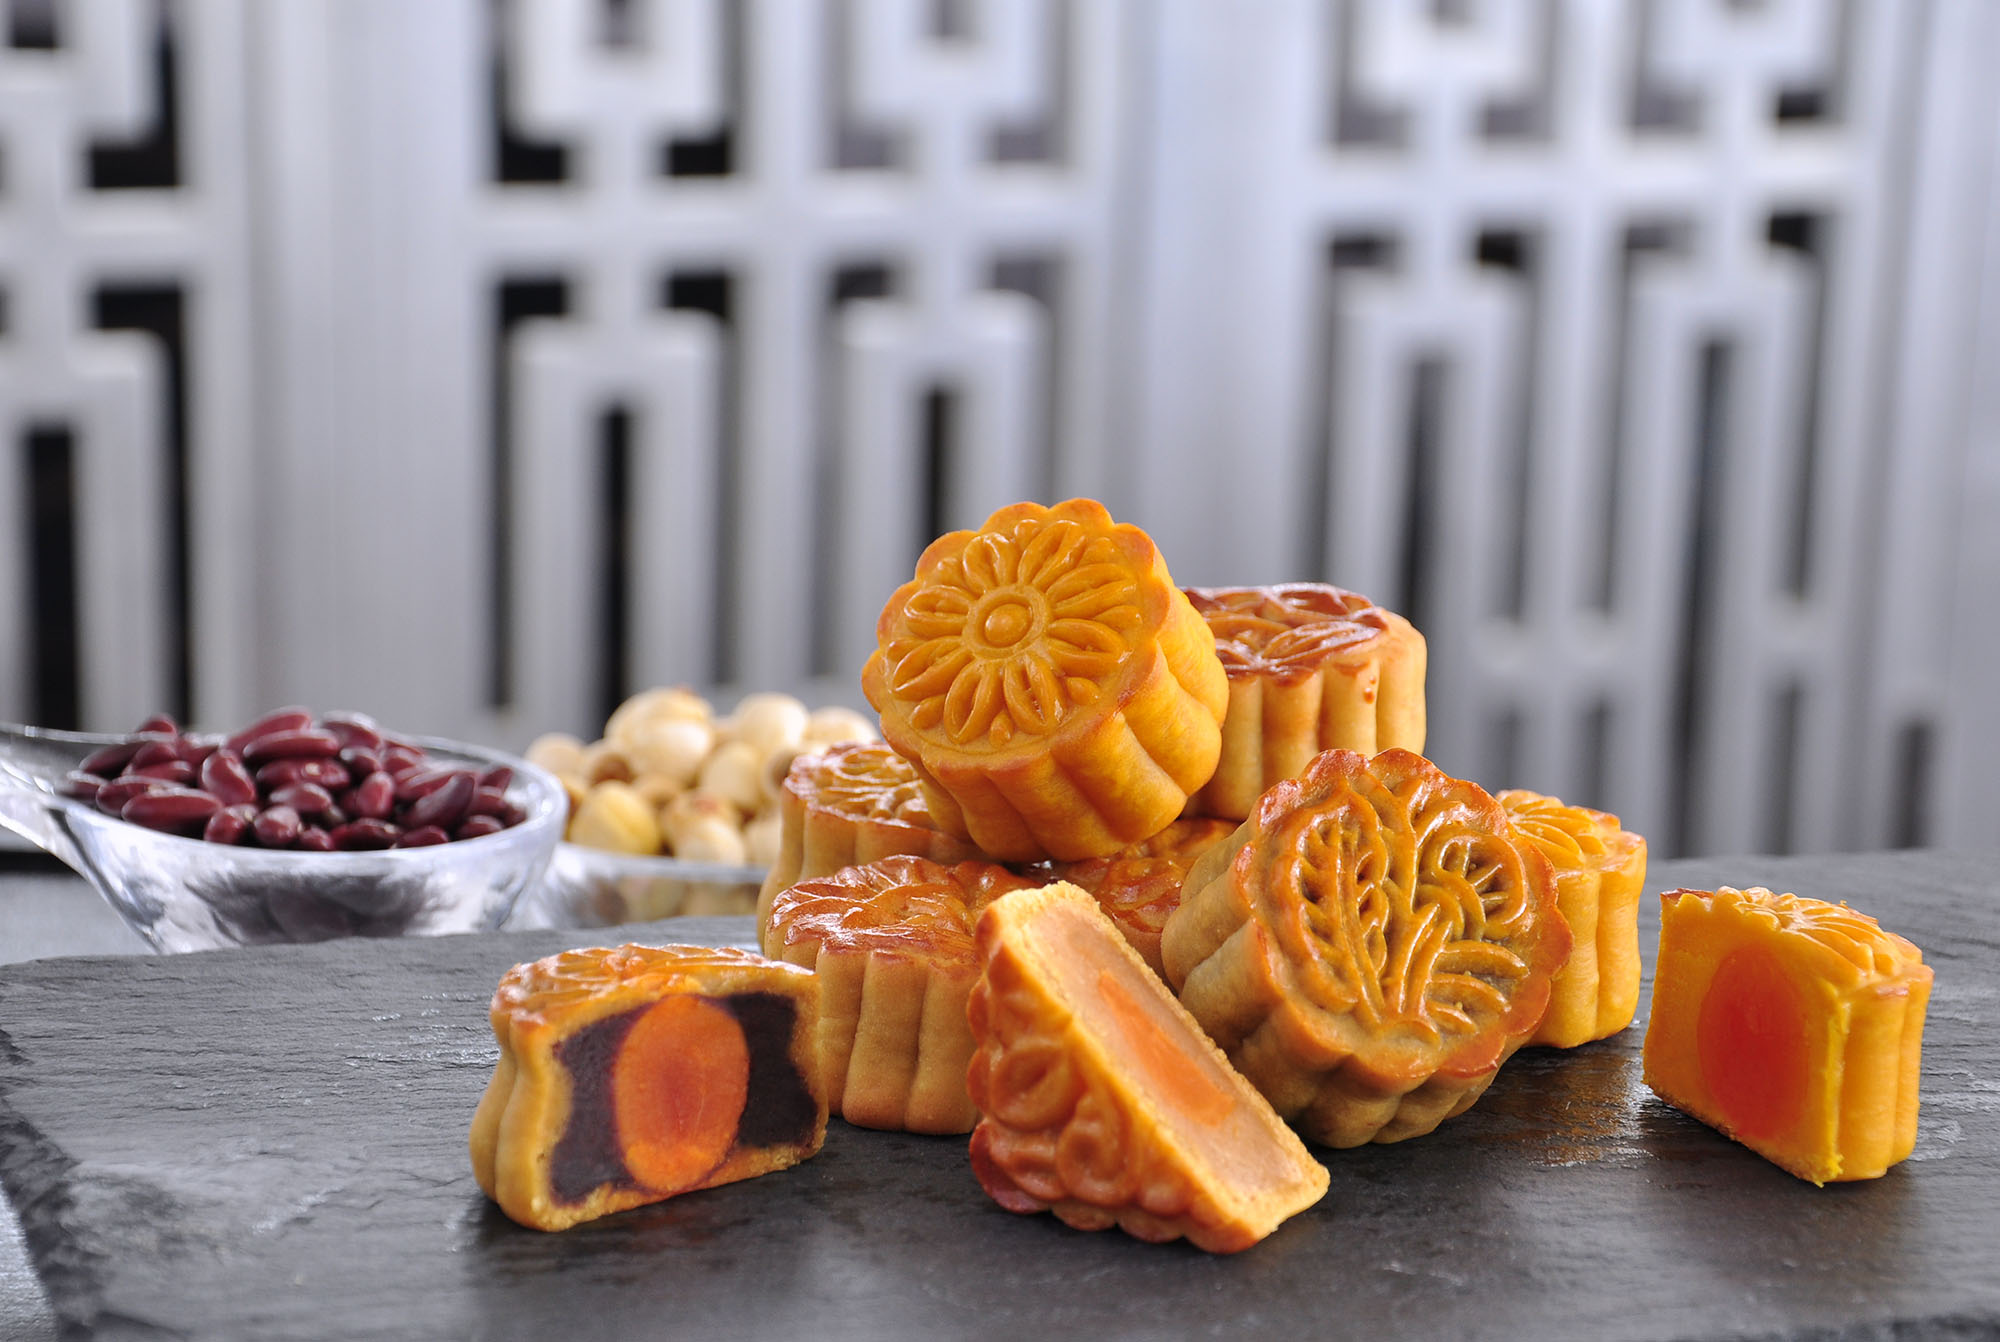 8 interesting facts about the Moon Cake Festival